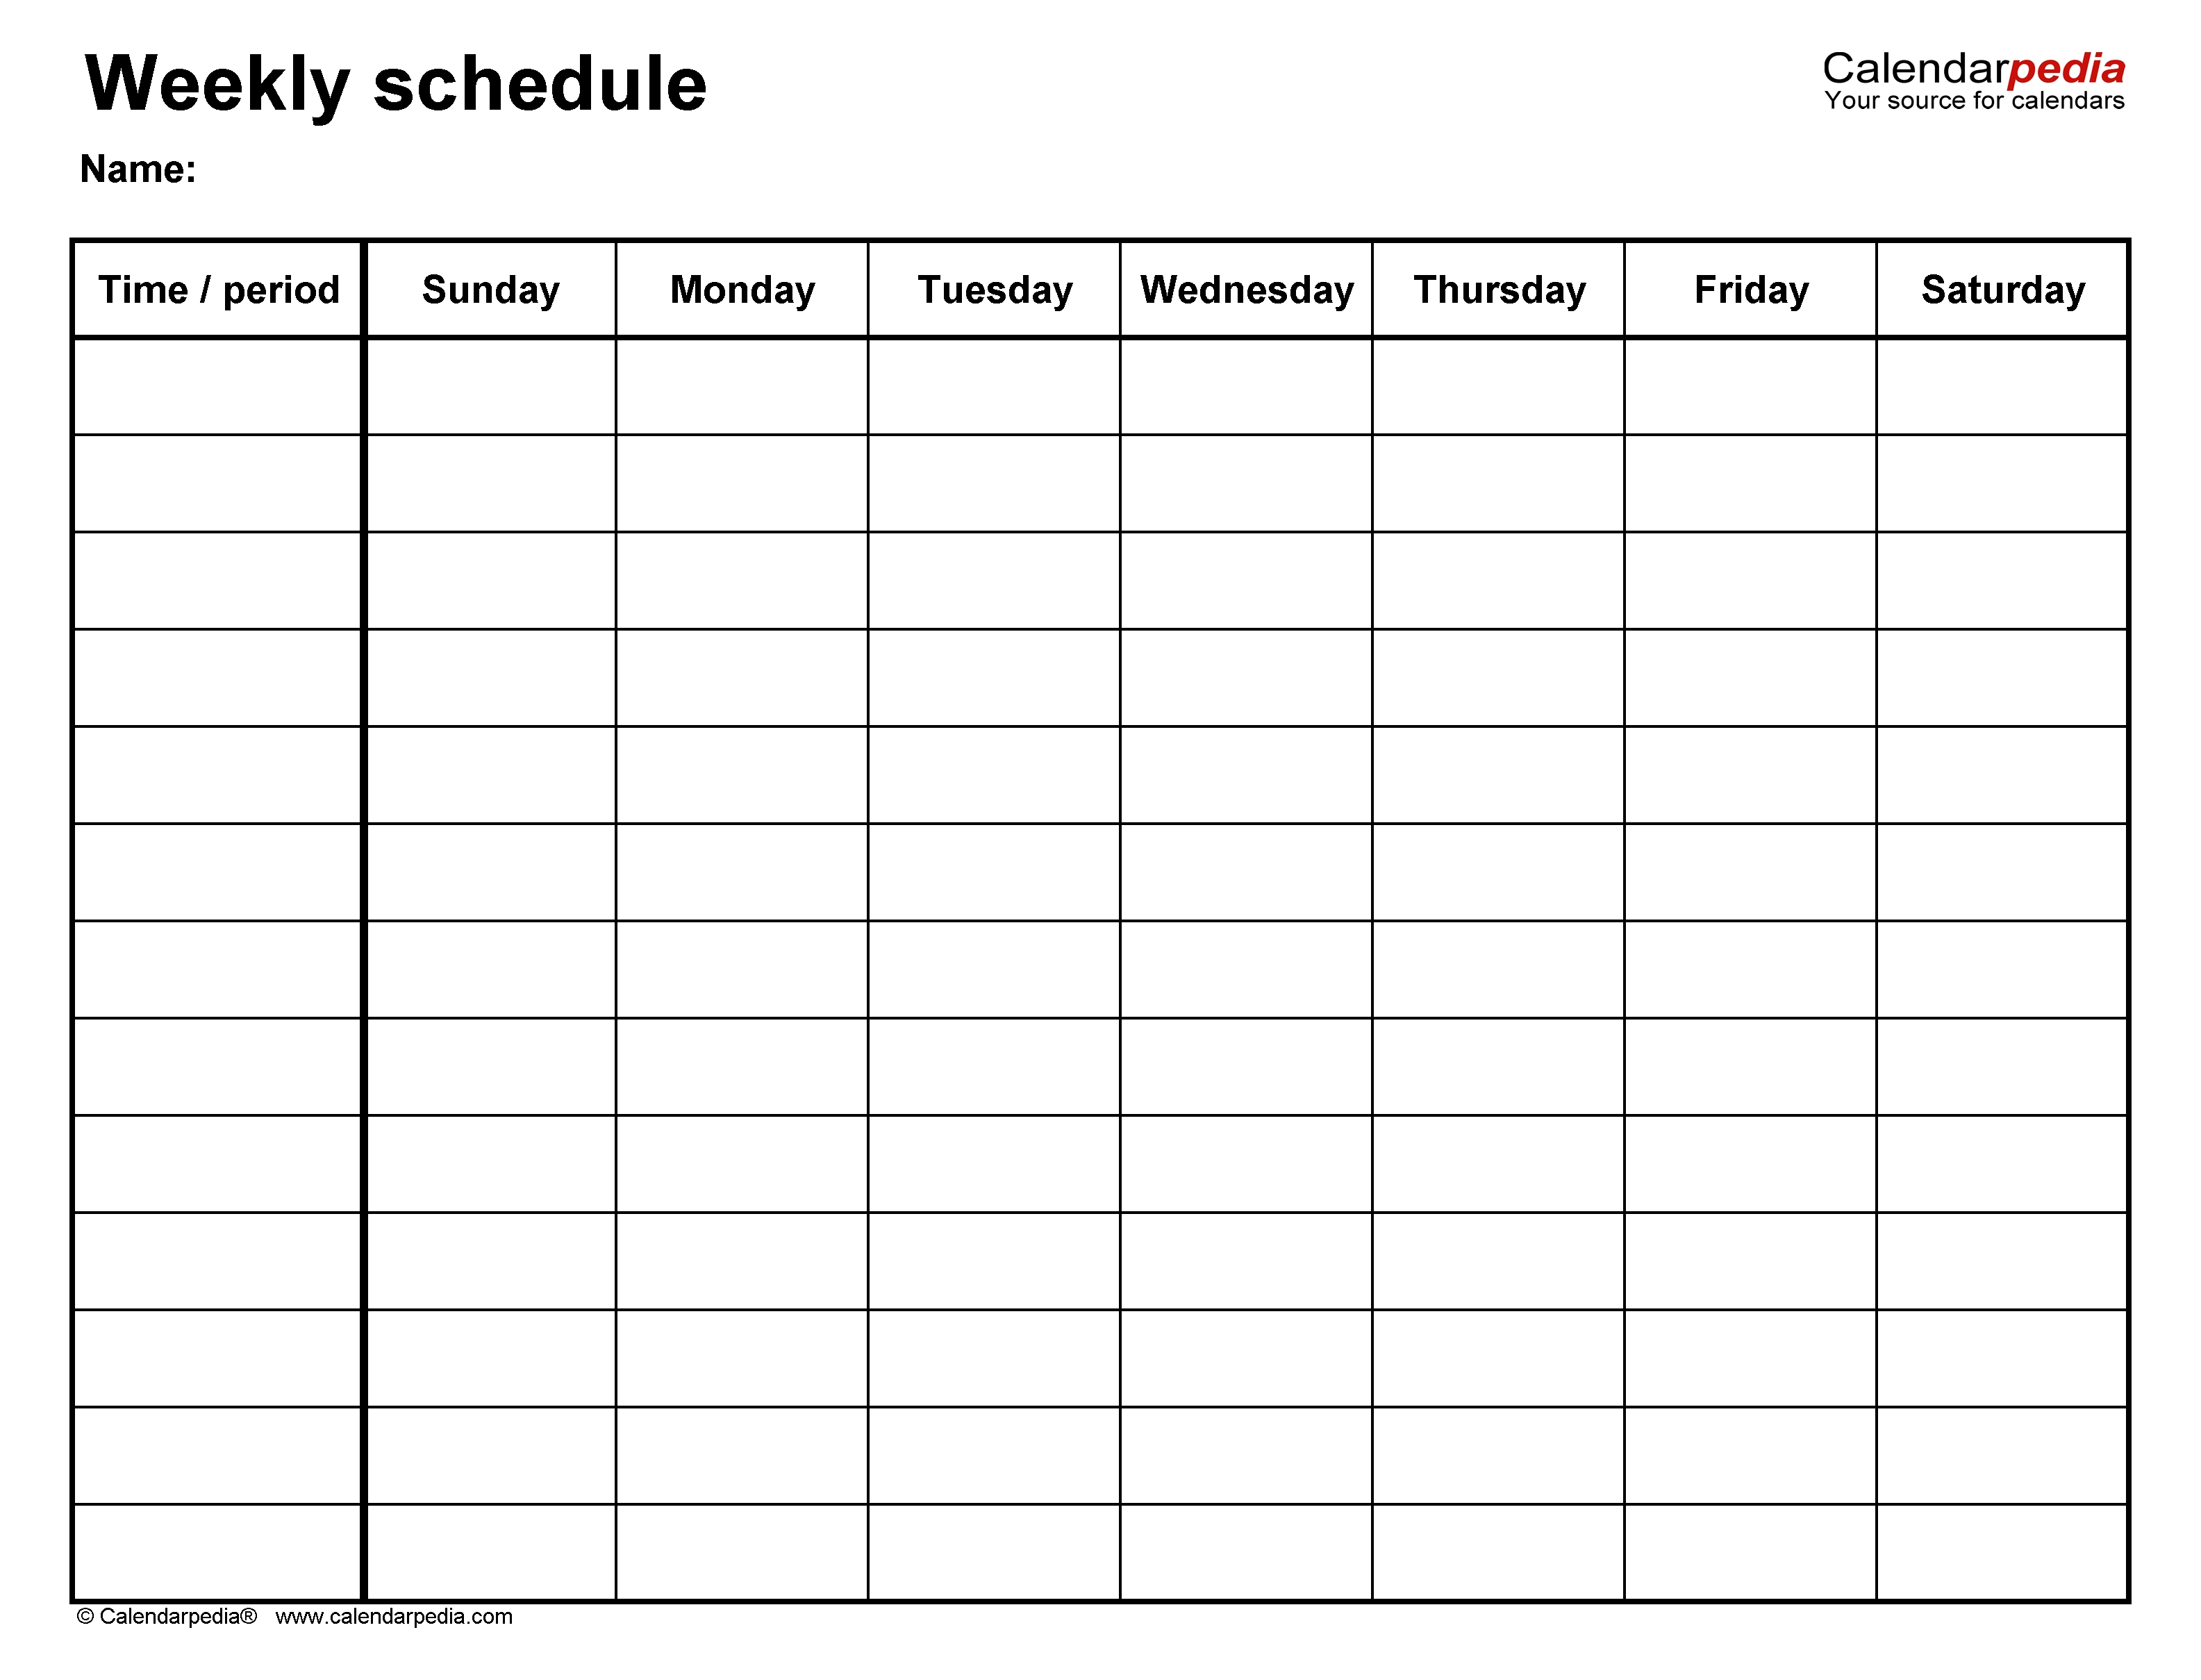 Free Weekly Schedule Templates For Word - 18 Templates  Business Monday To Friday Daily Planner